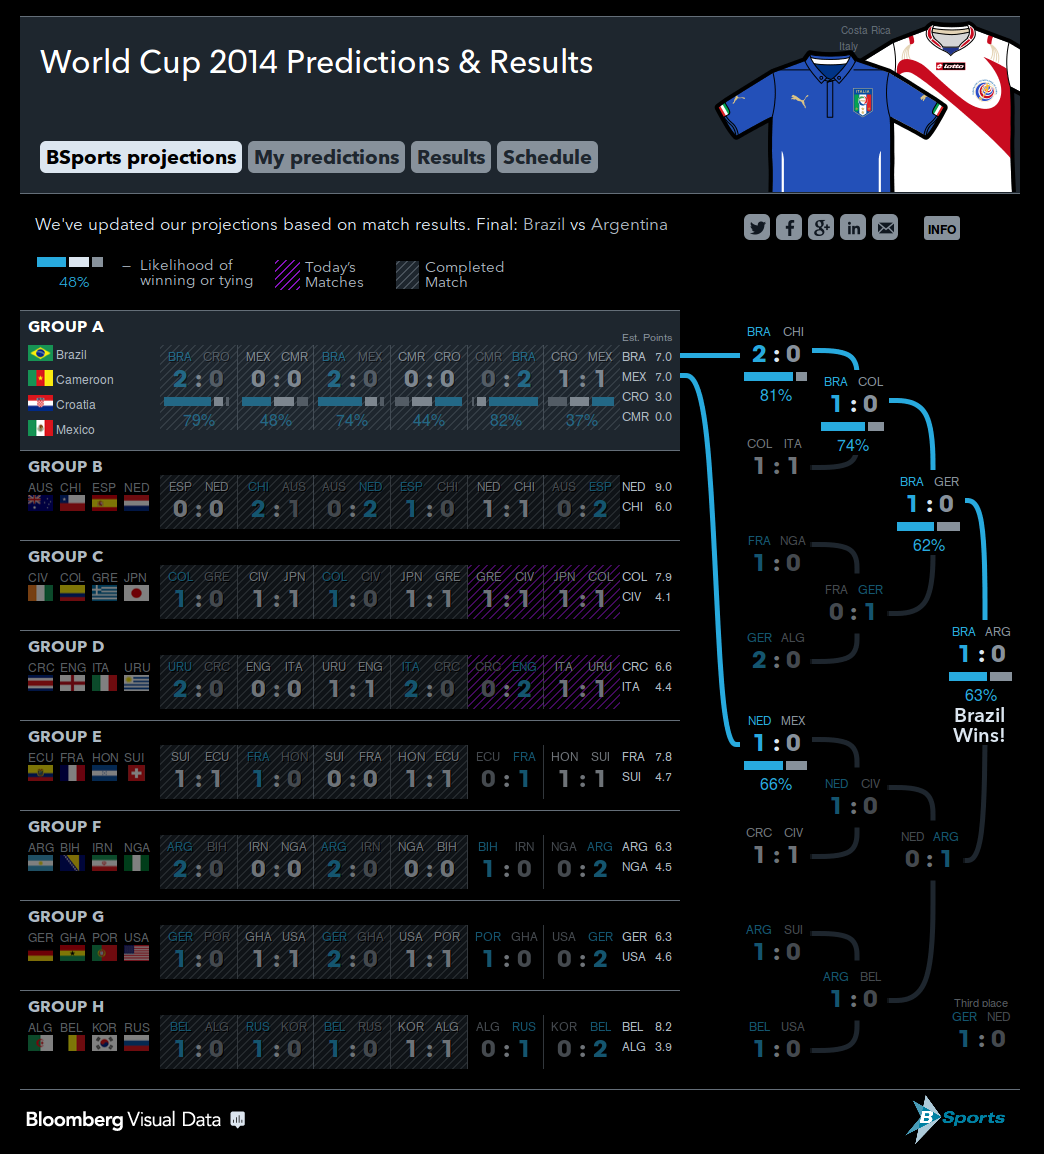 World Cup 2014 Predictions & Results